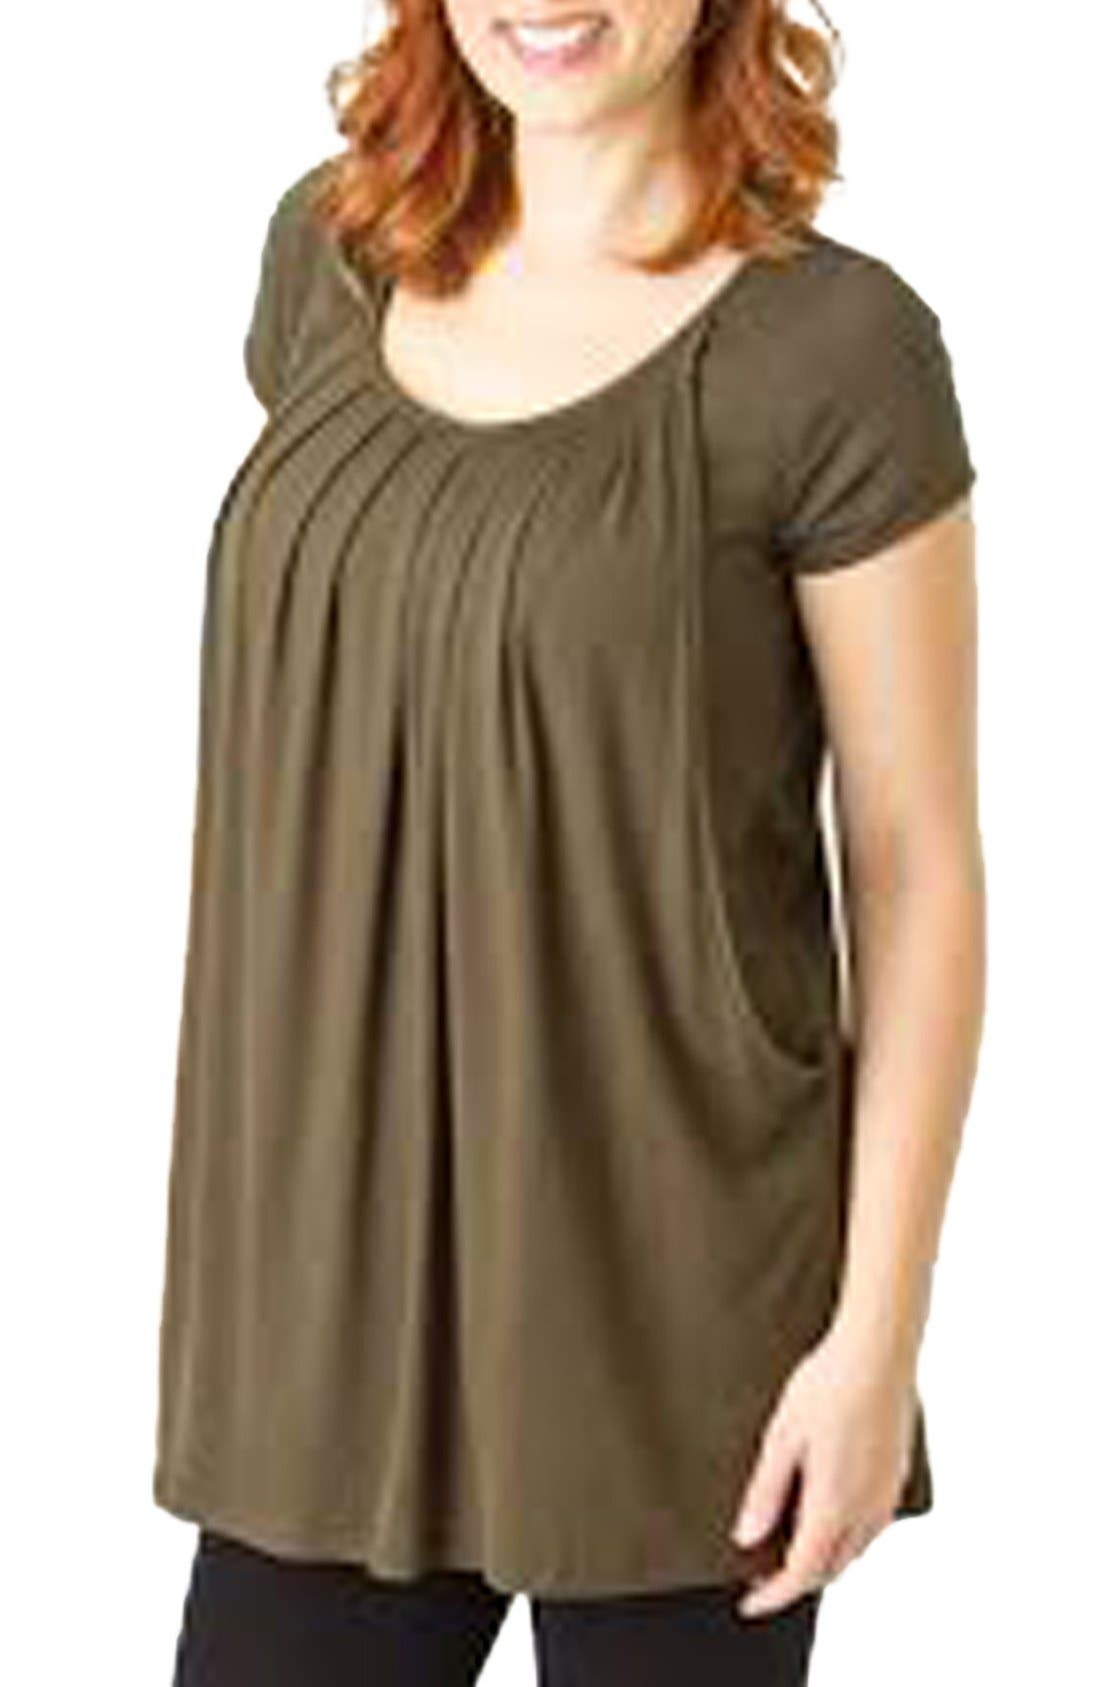 SAVI MOM 'The Short Sleeve' Pleated Maternity/Nursing Top